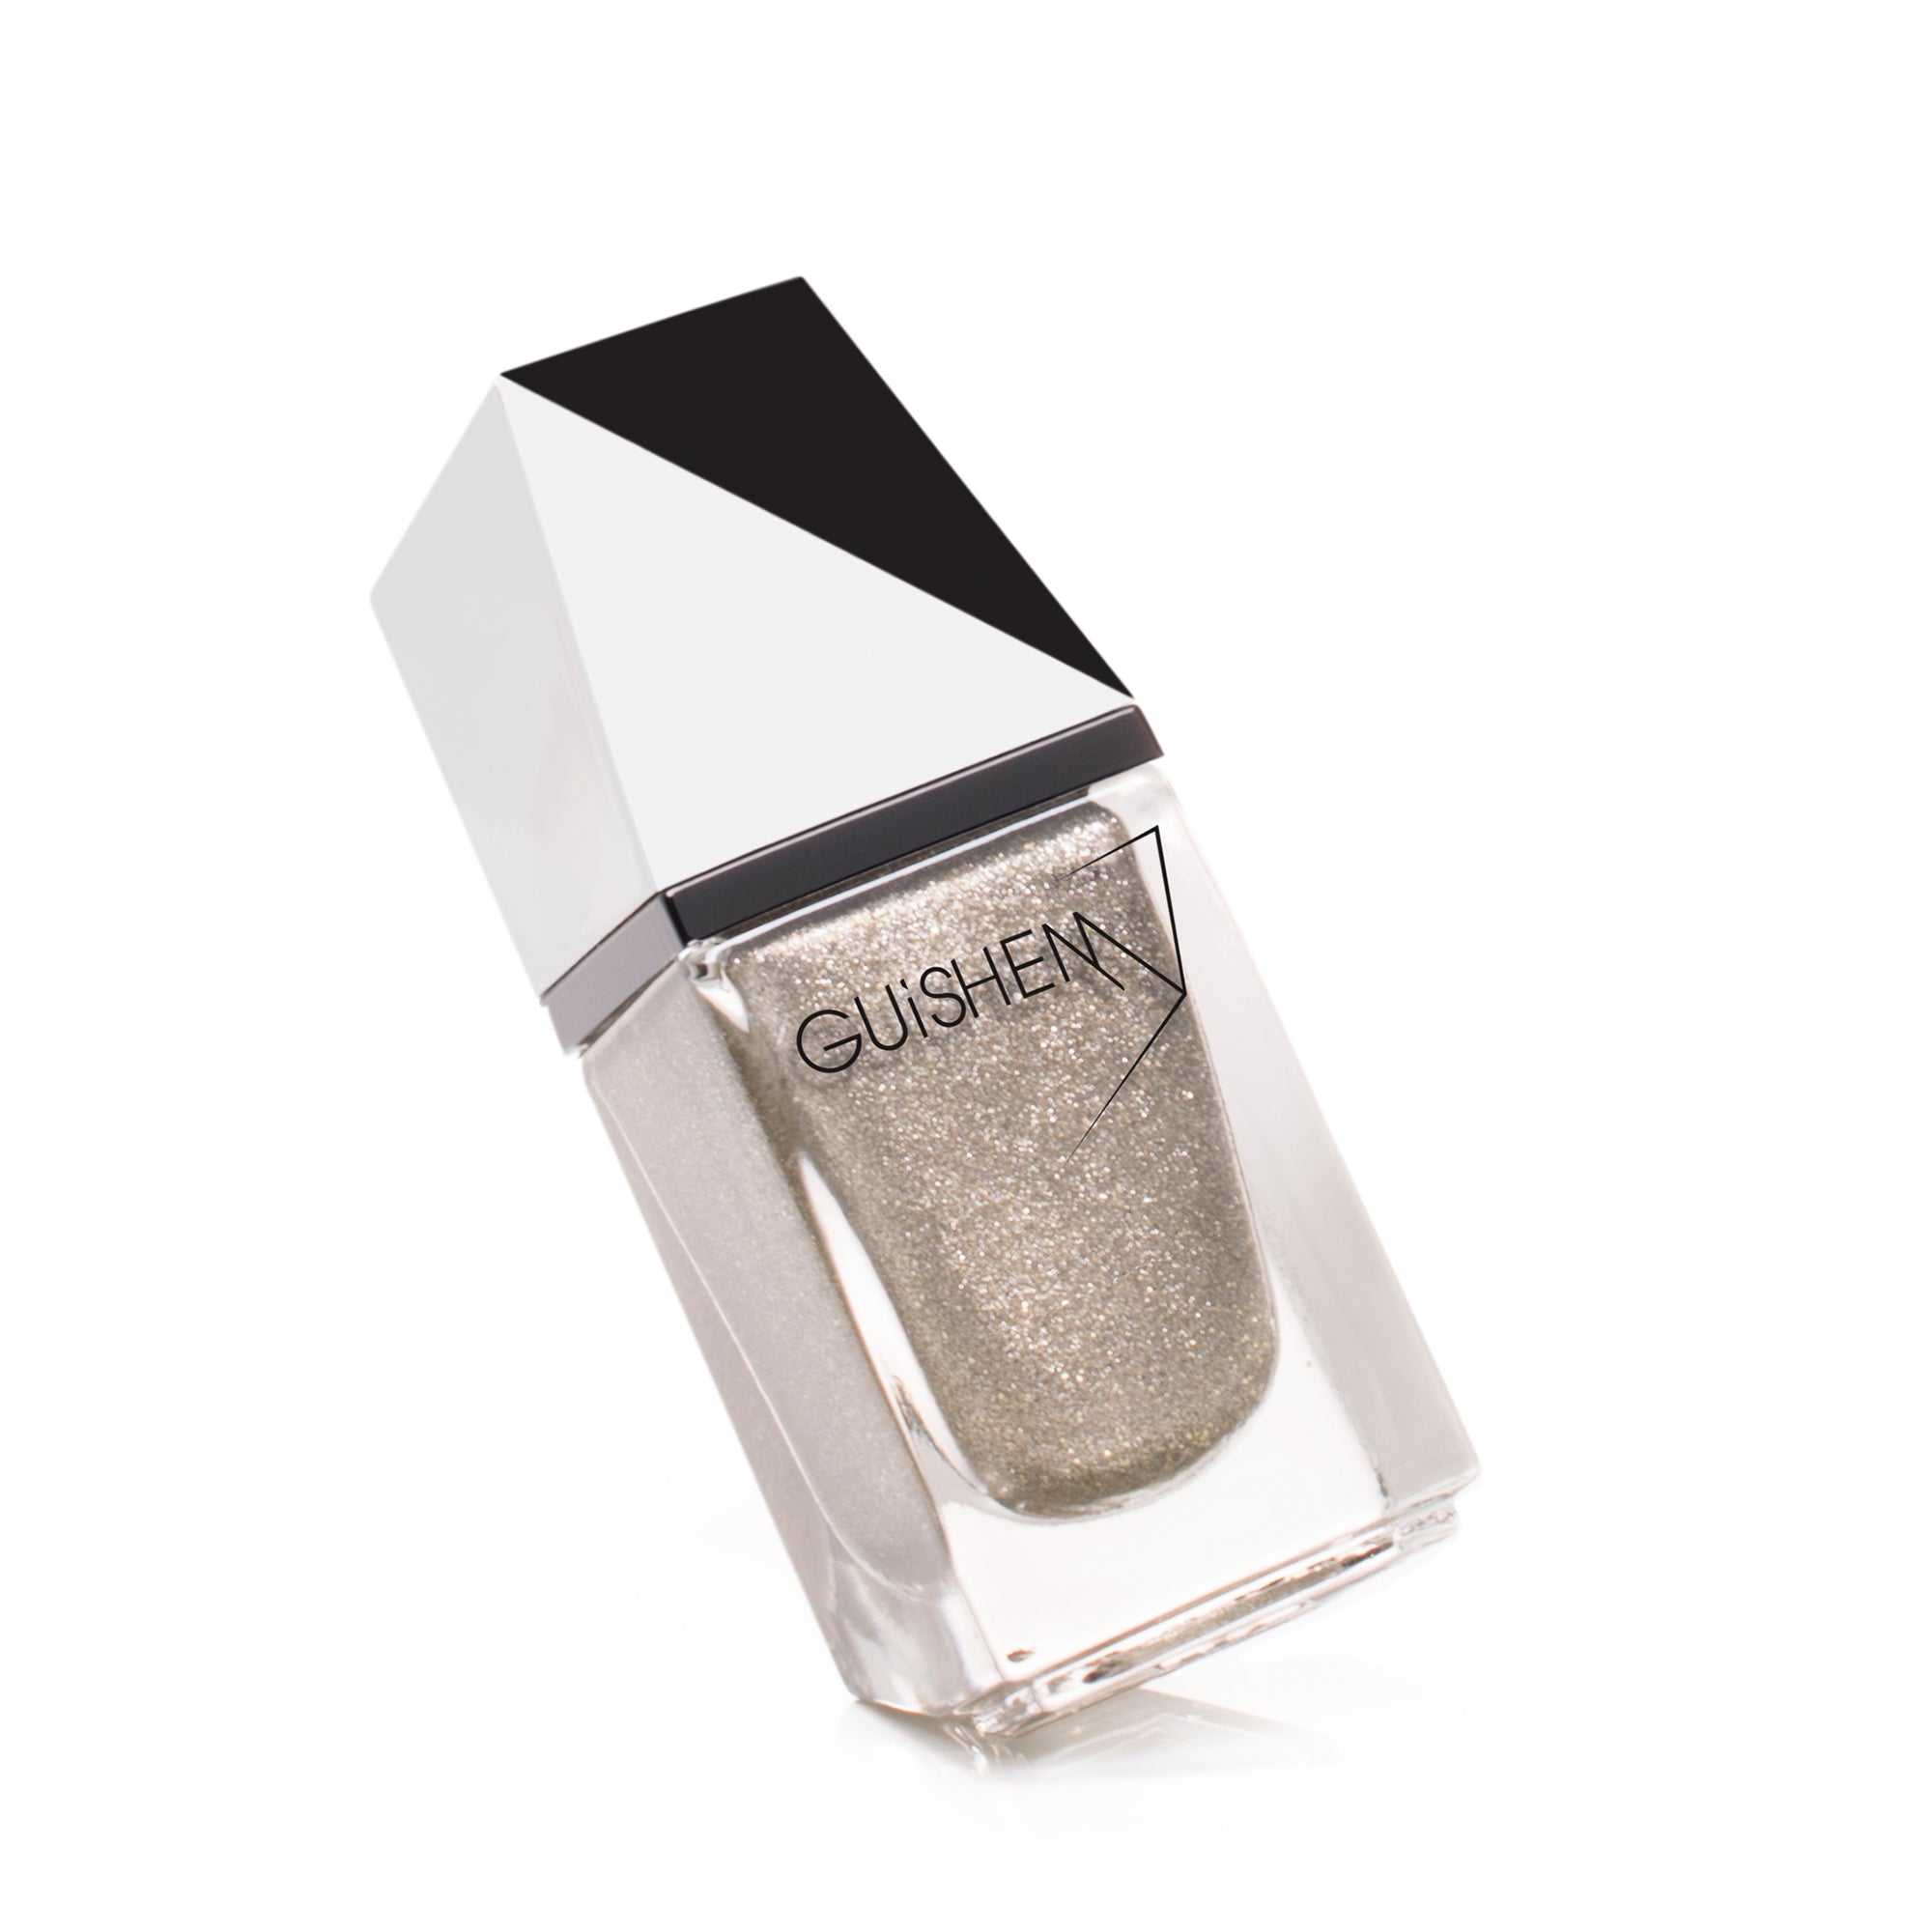 GUiSHEM - LE VERNIS - FROSTED ALMOND 630